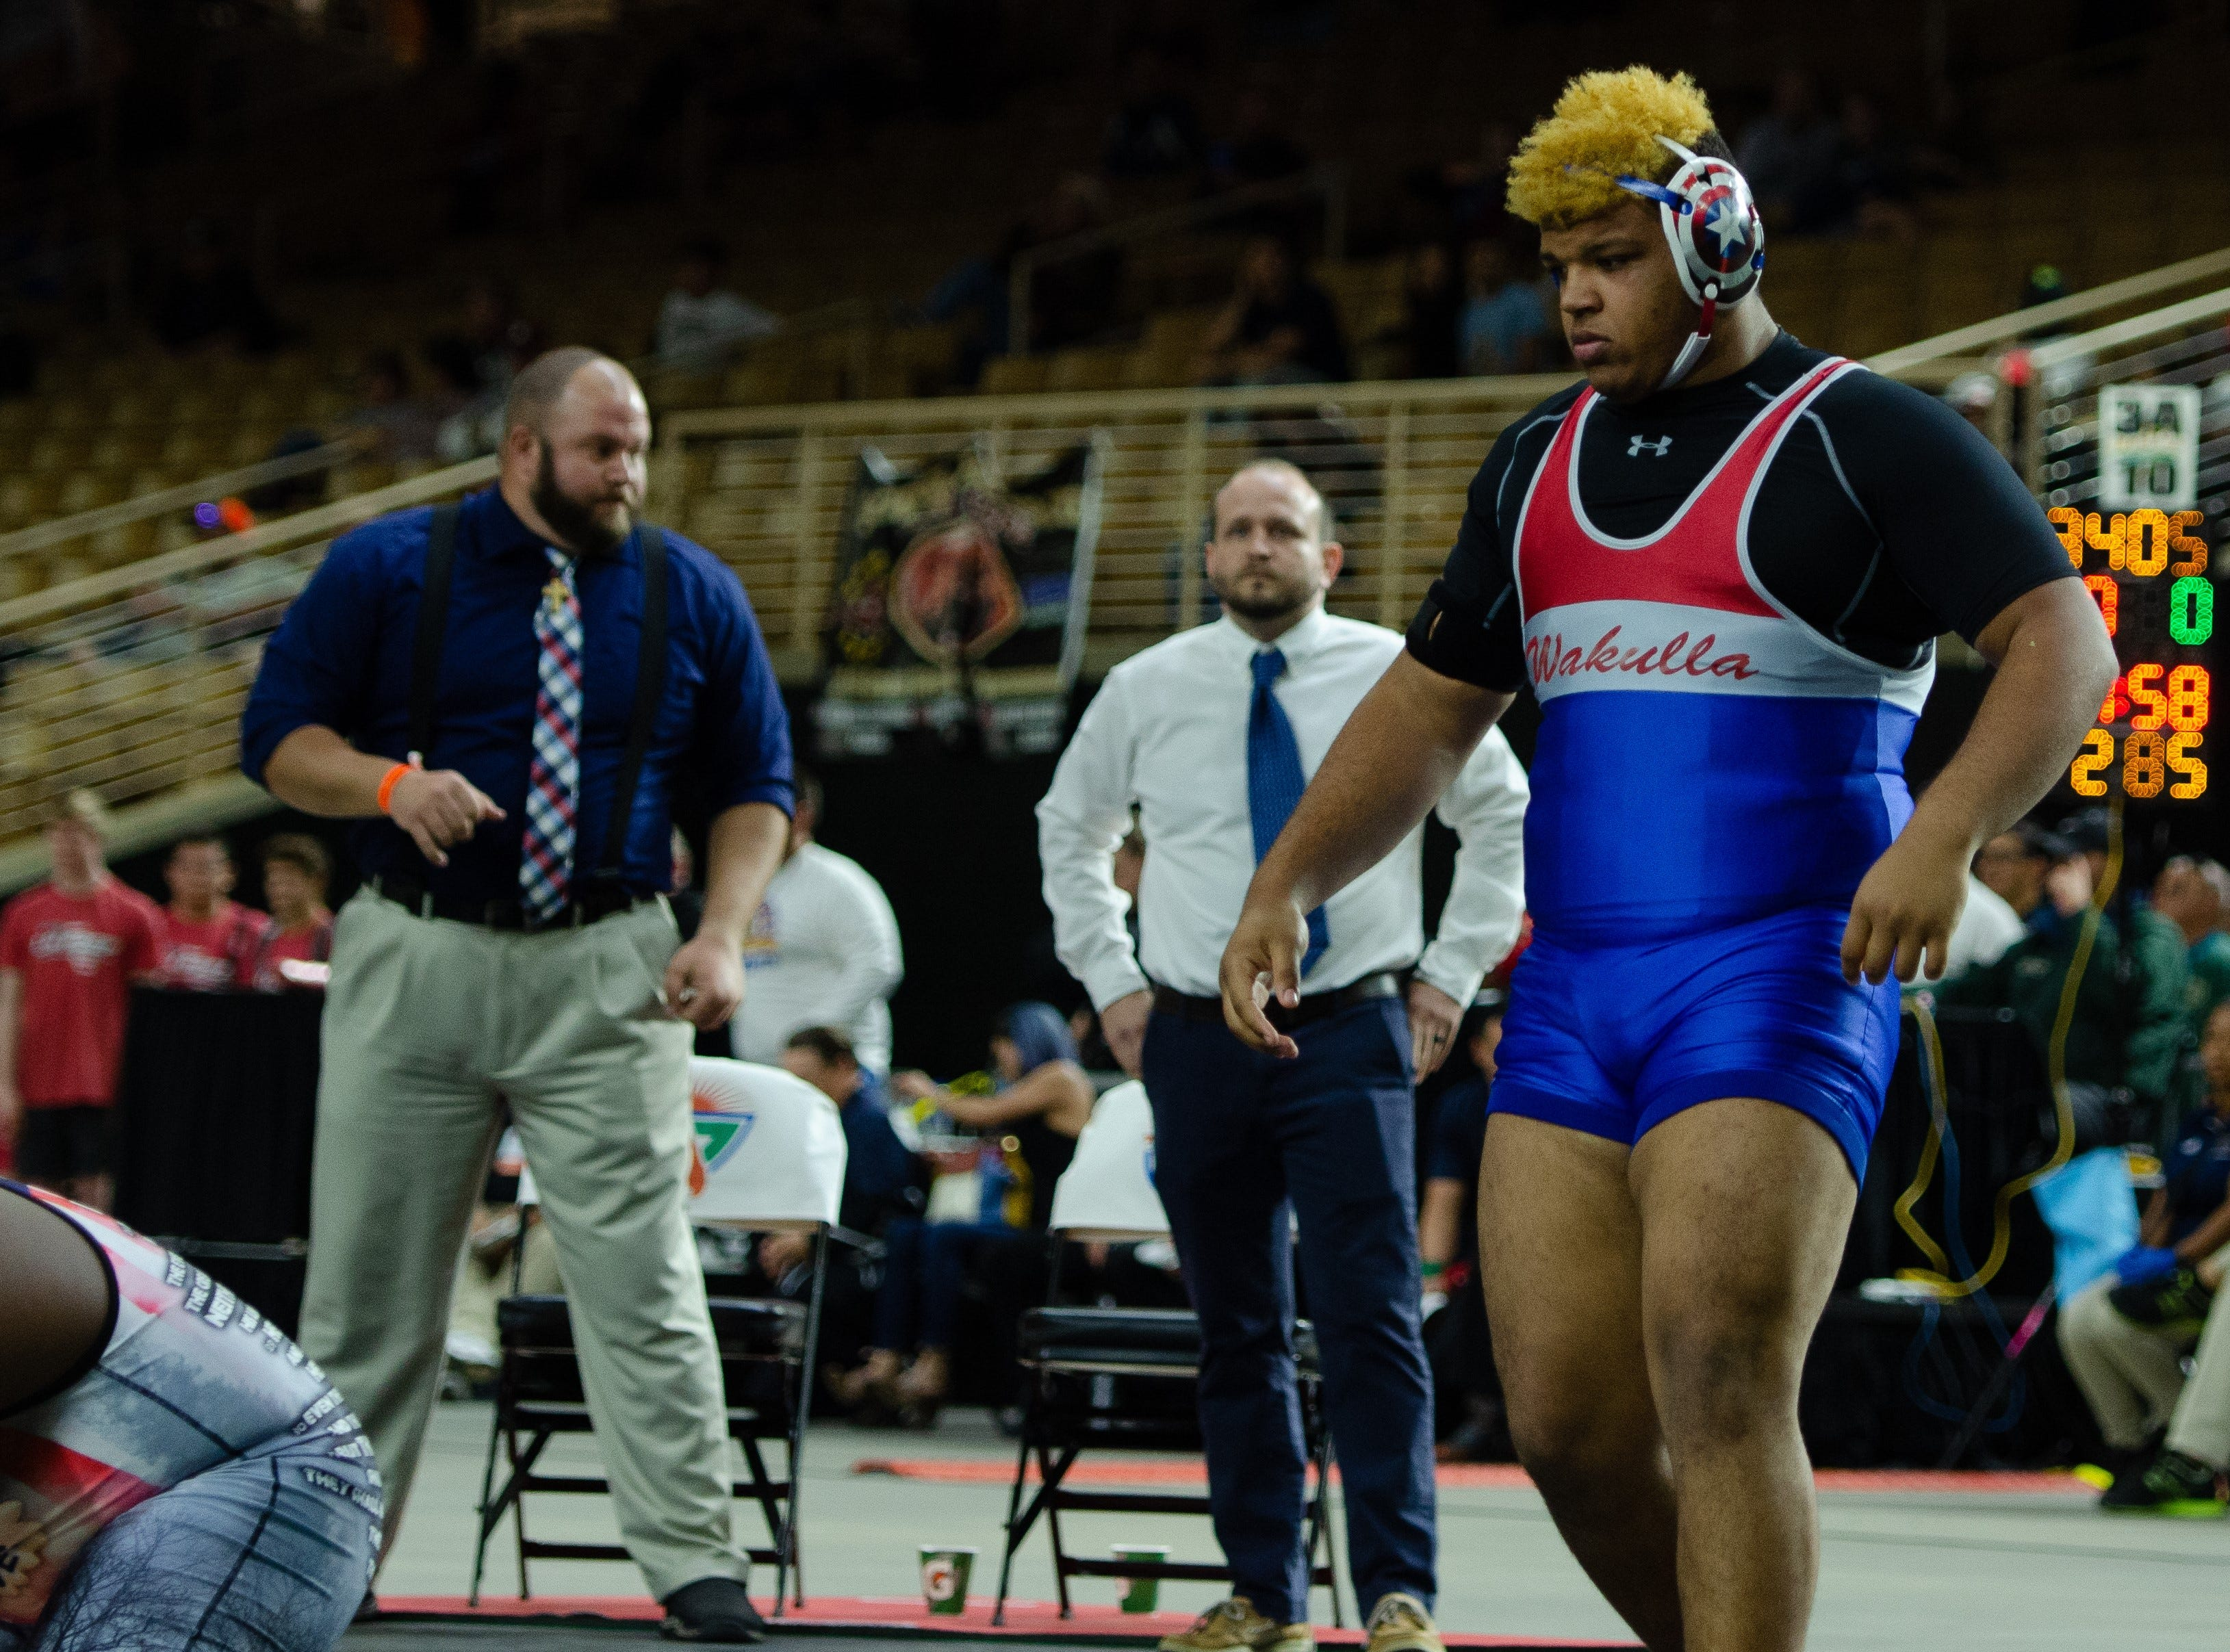 Wakulla's Darius Wilkins wrestles a heavyweight championship match at the FHSAA Wrestling State Championships inside Silver Spur Arena in Kissimmee.